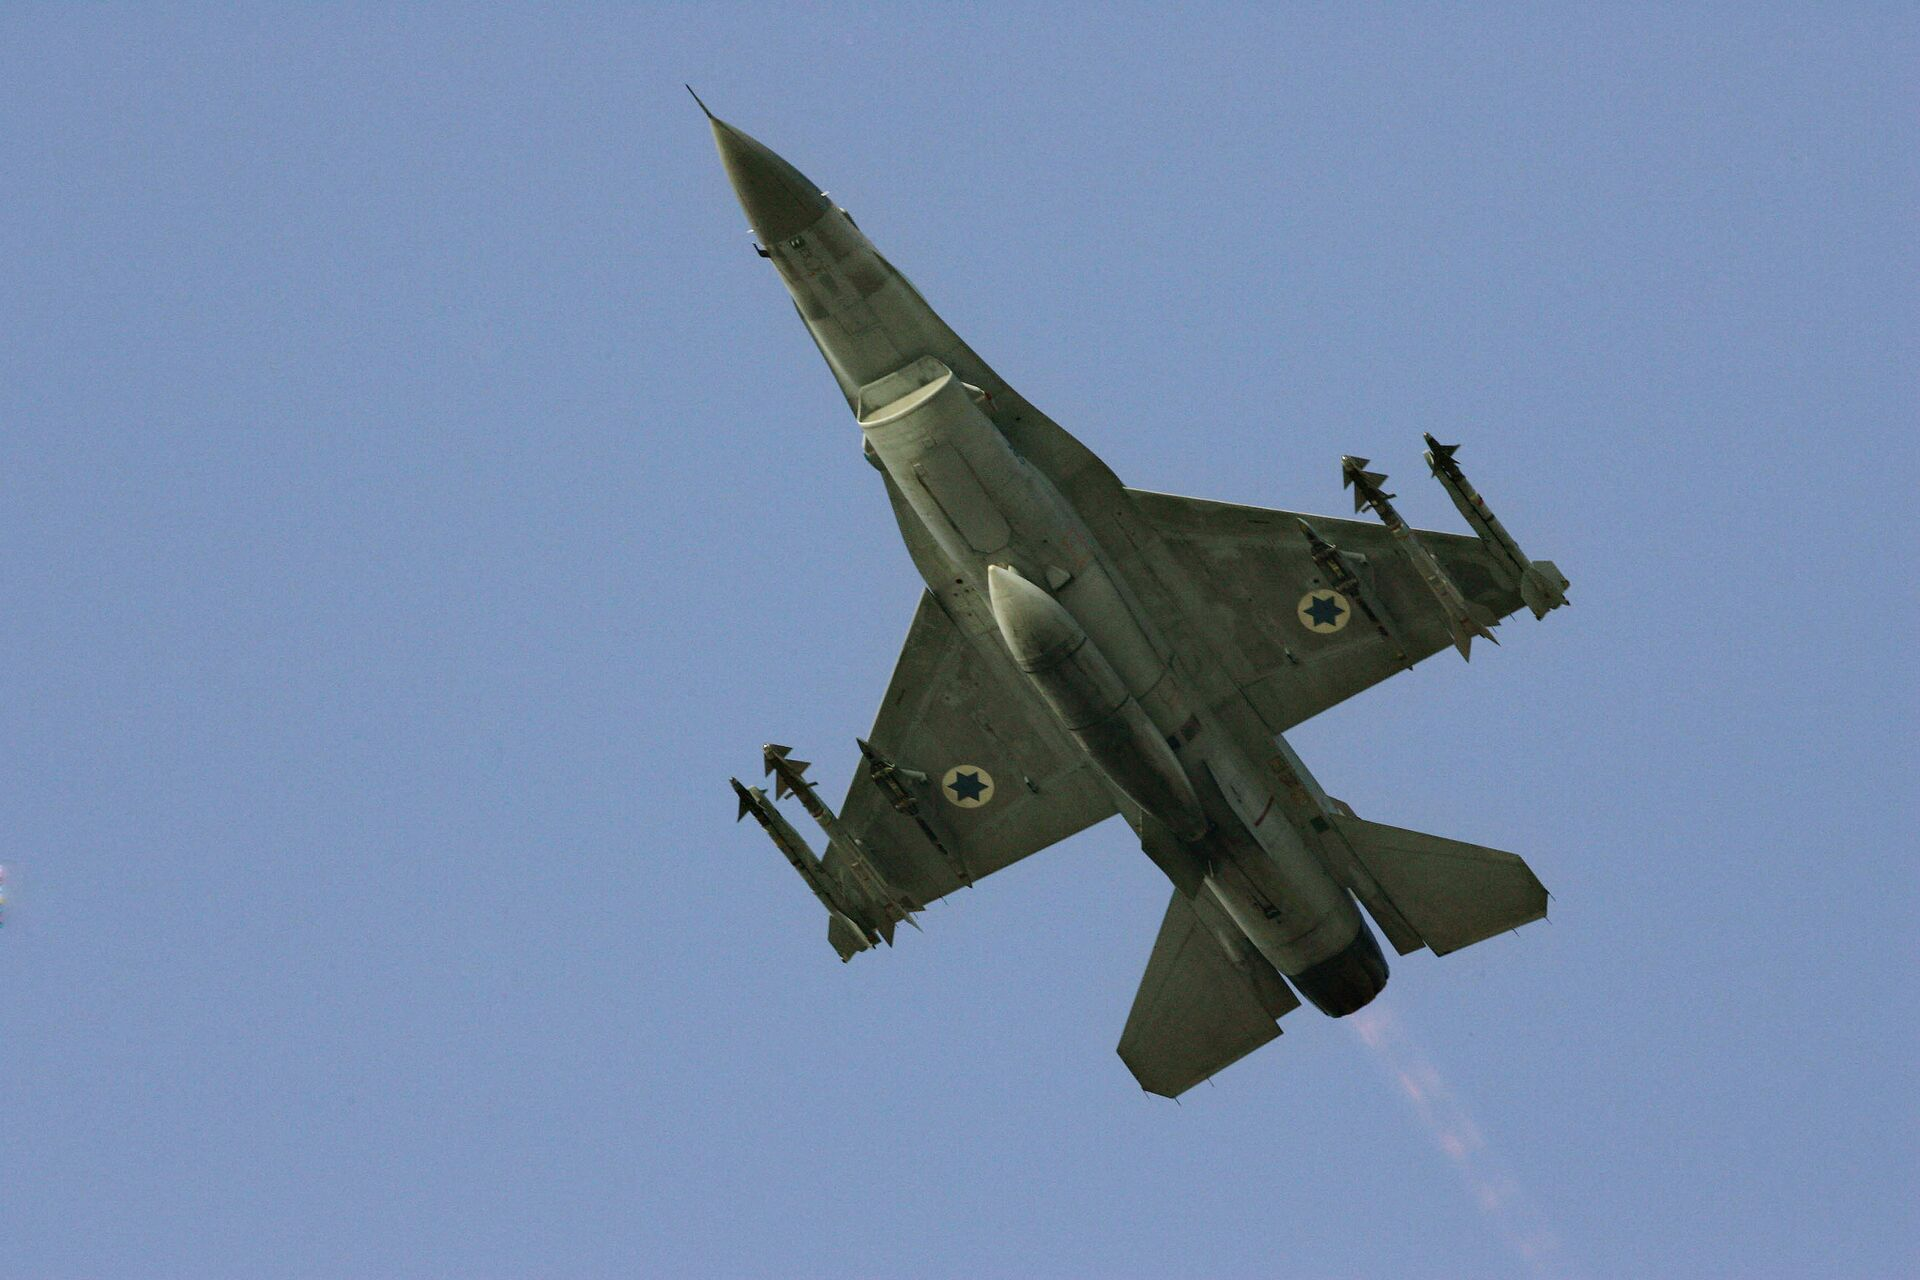 In this Sunday, July 16, 2006 file photo, an Israeli F-16 warplane takes off to a mission in Lebanon from an air force base in northern Israel. - Sputnik International, 1920, 07.09.2021